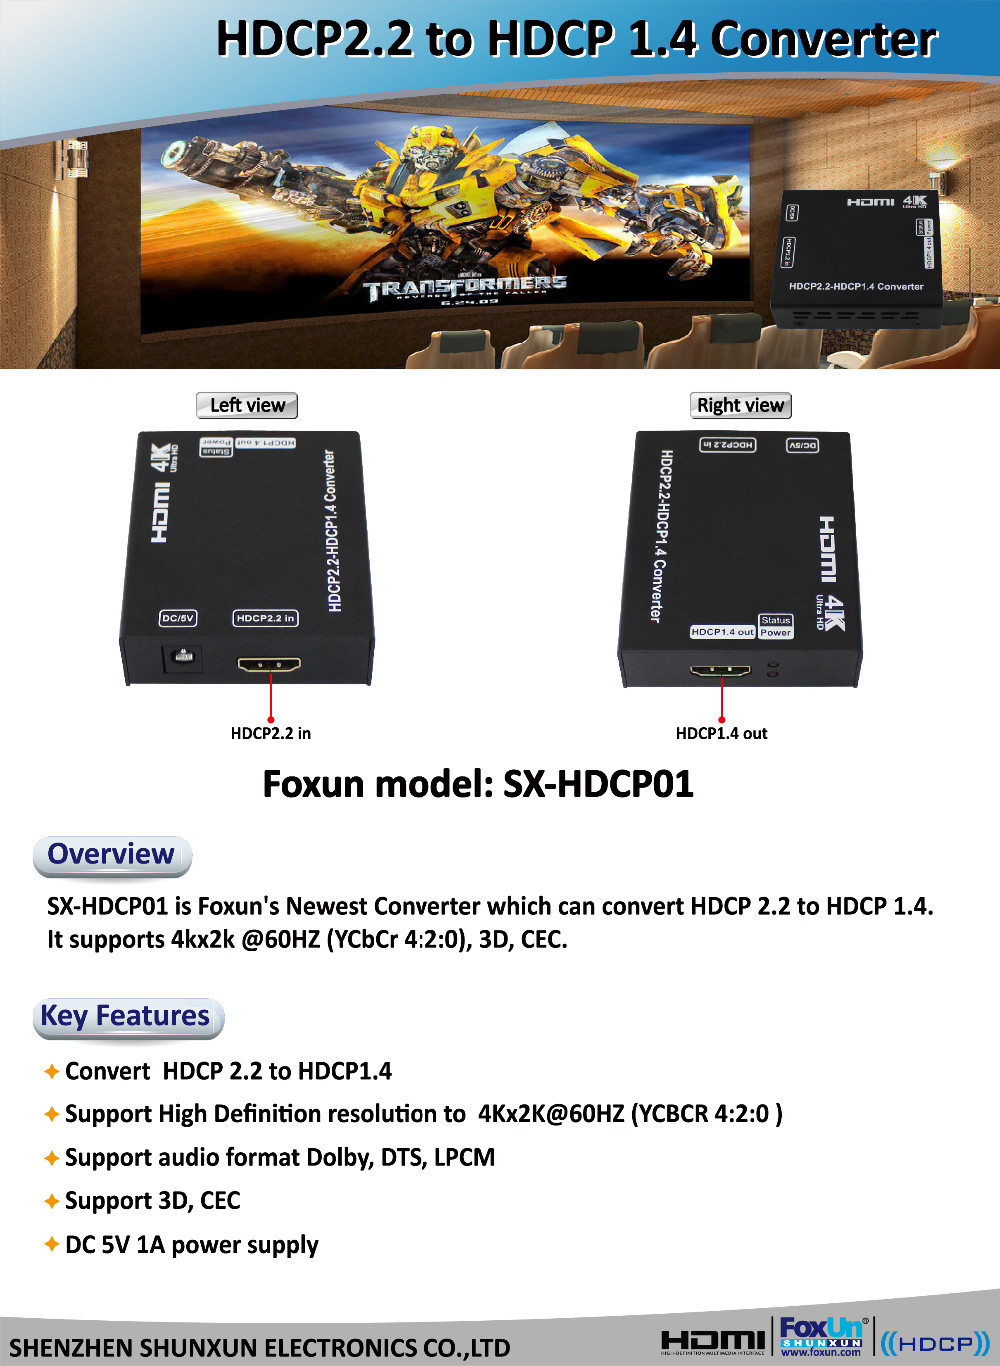 SX-HDCP01 4k HDCP v2.2 to v1.4 Converter - Allows you to Connect Sky Q etc to Tvs that will only support HDCP 1.4